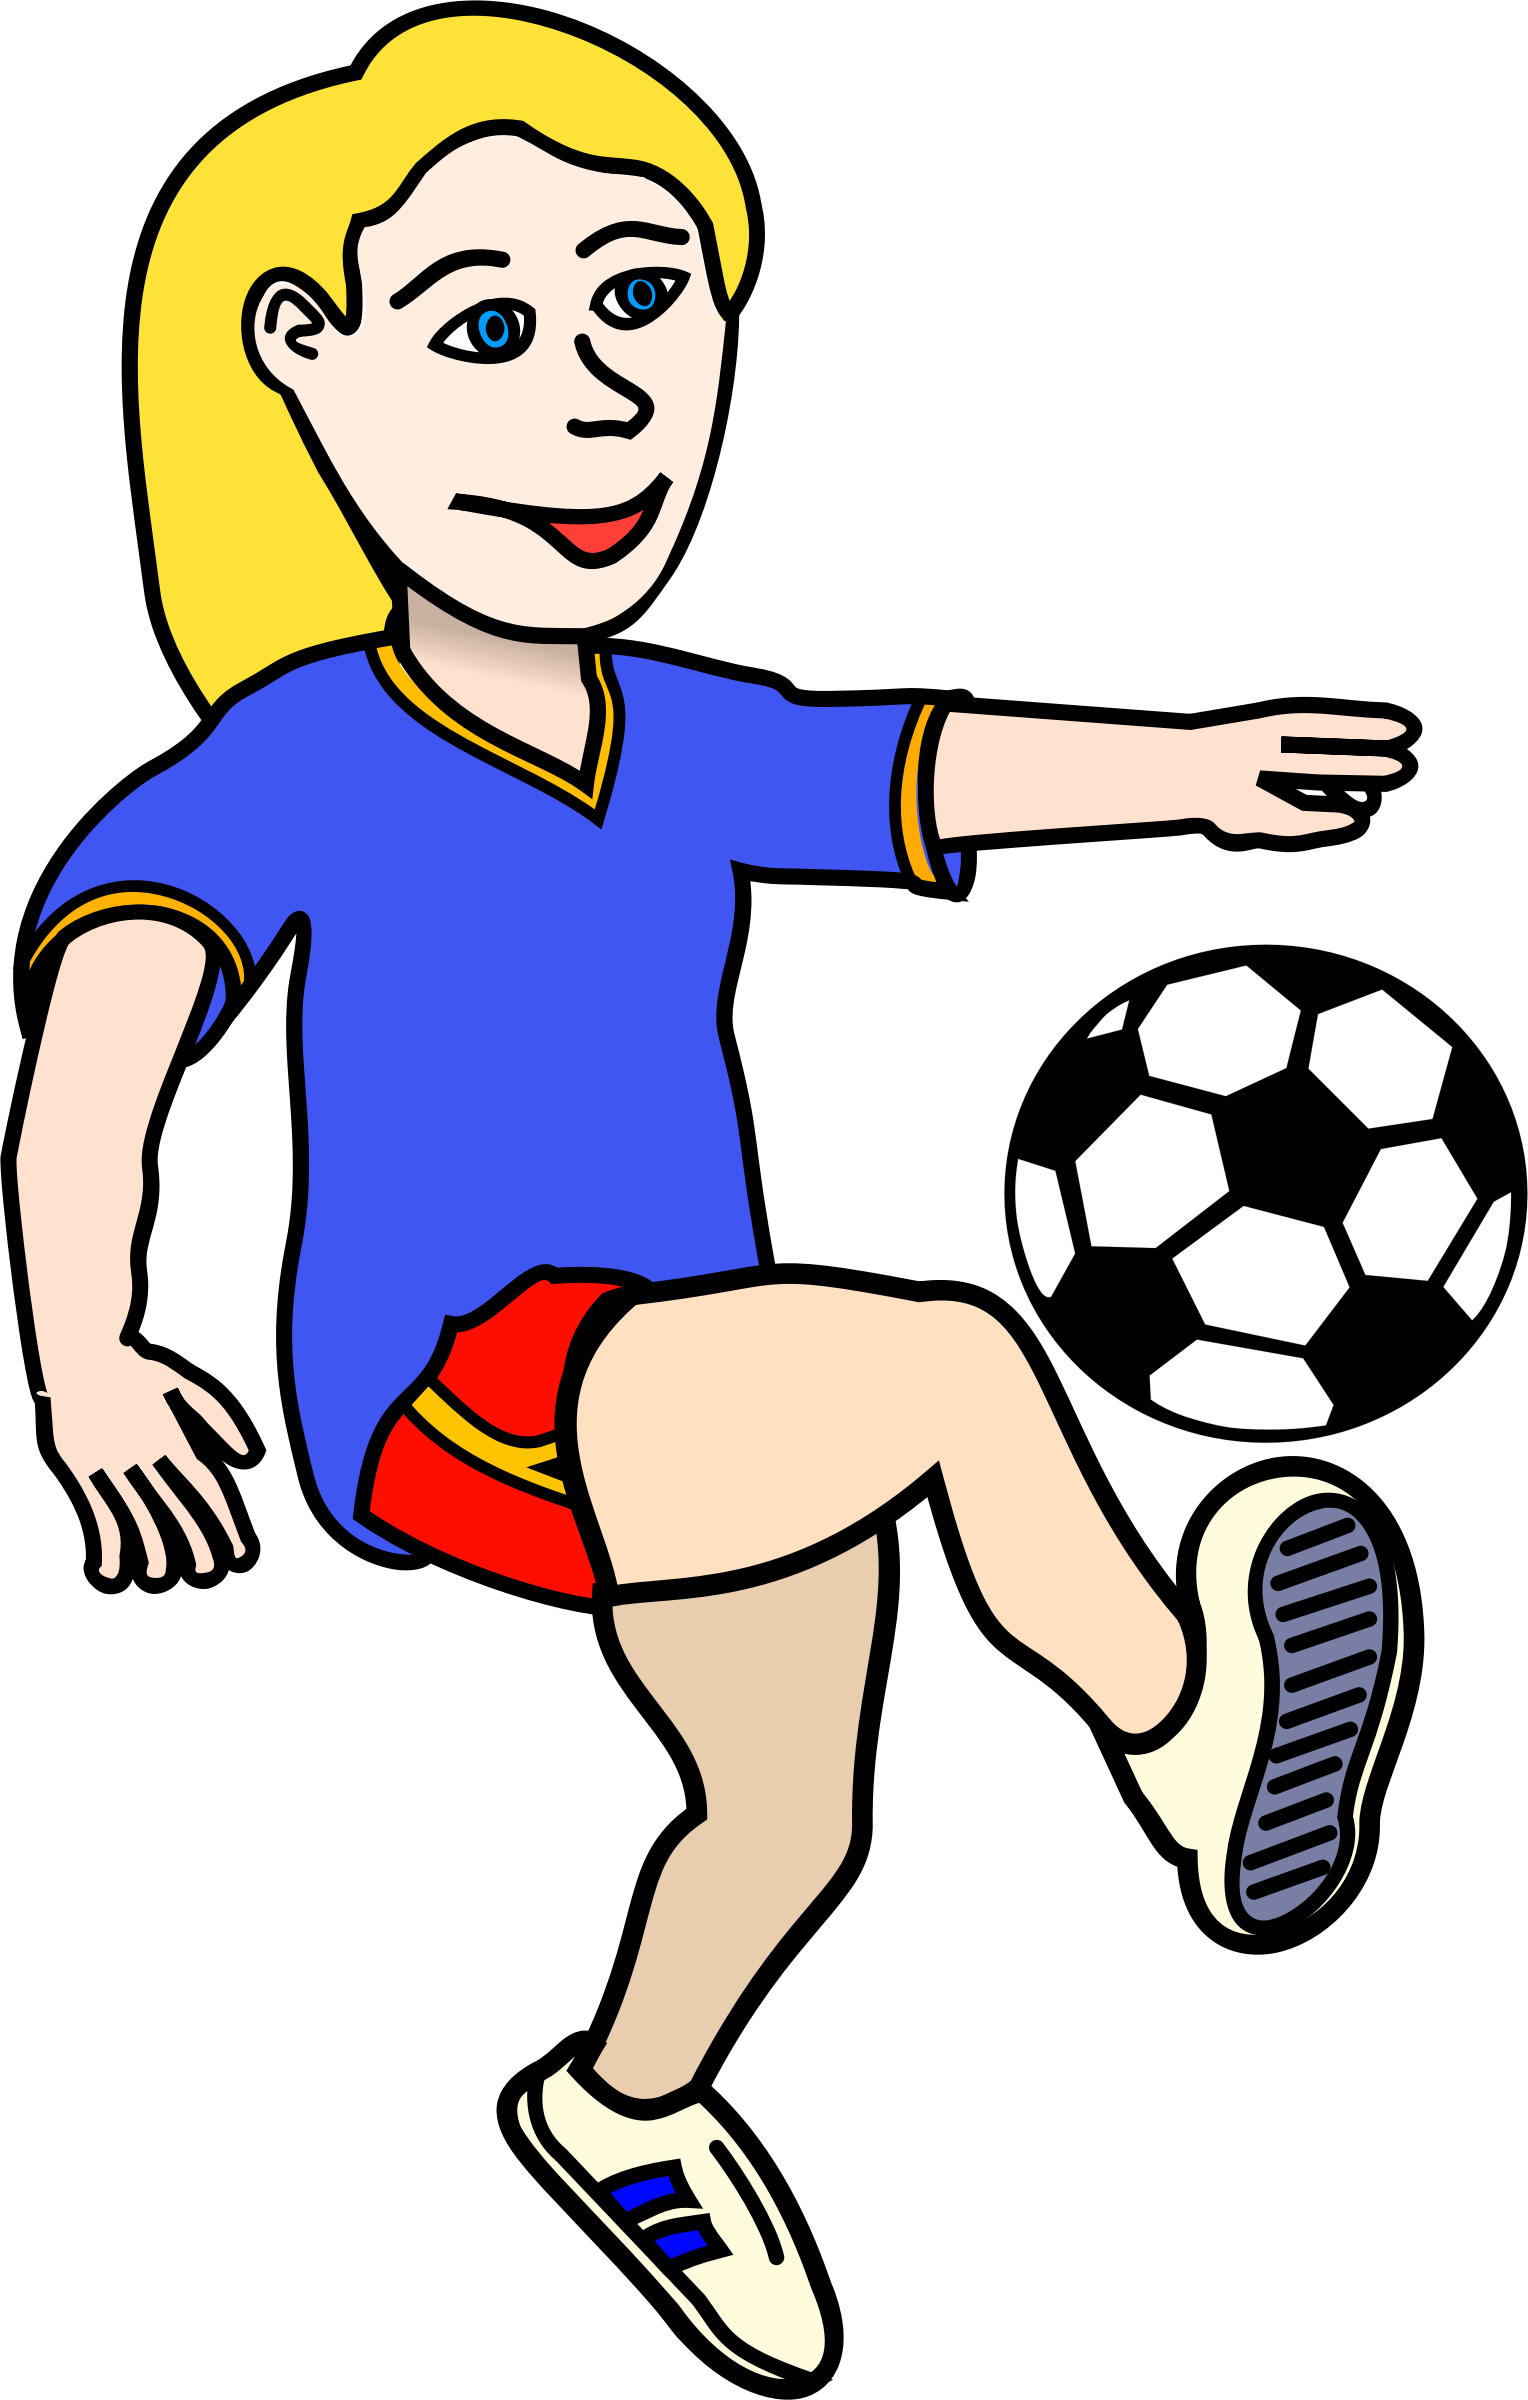 Soccer clipart monkey. Girl cartoon image group